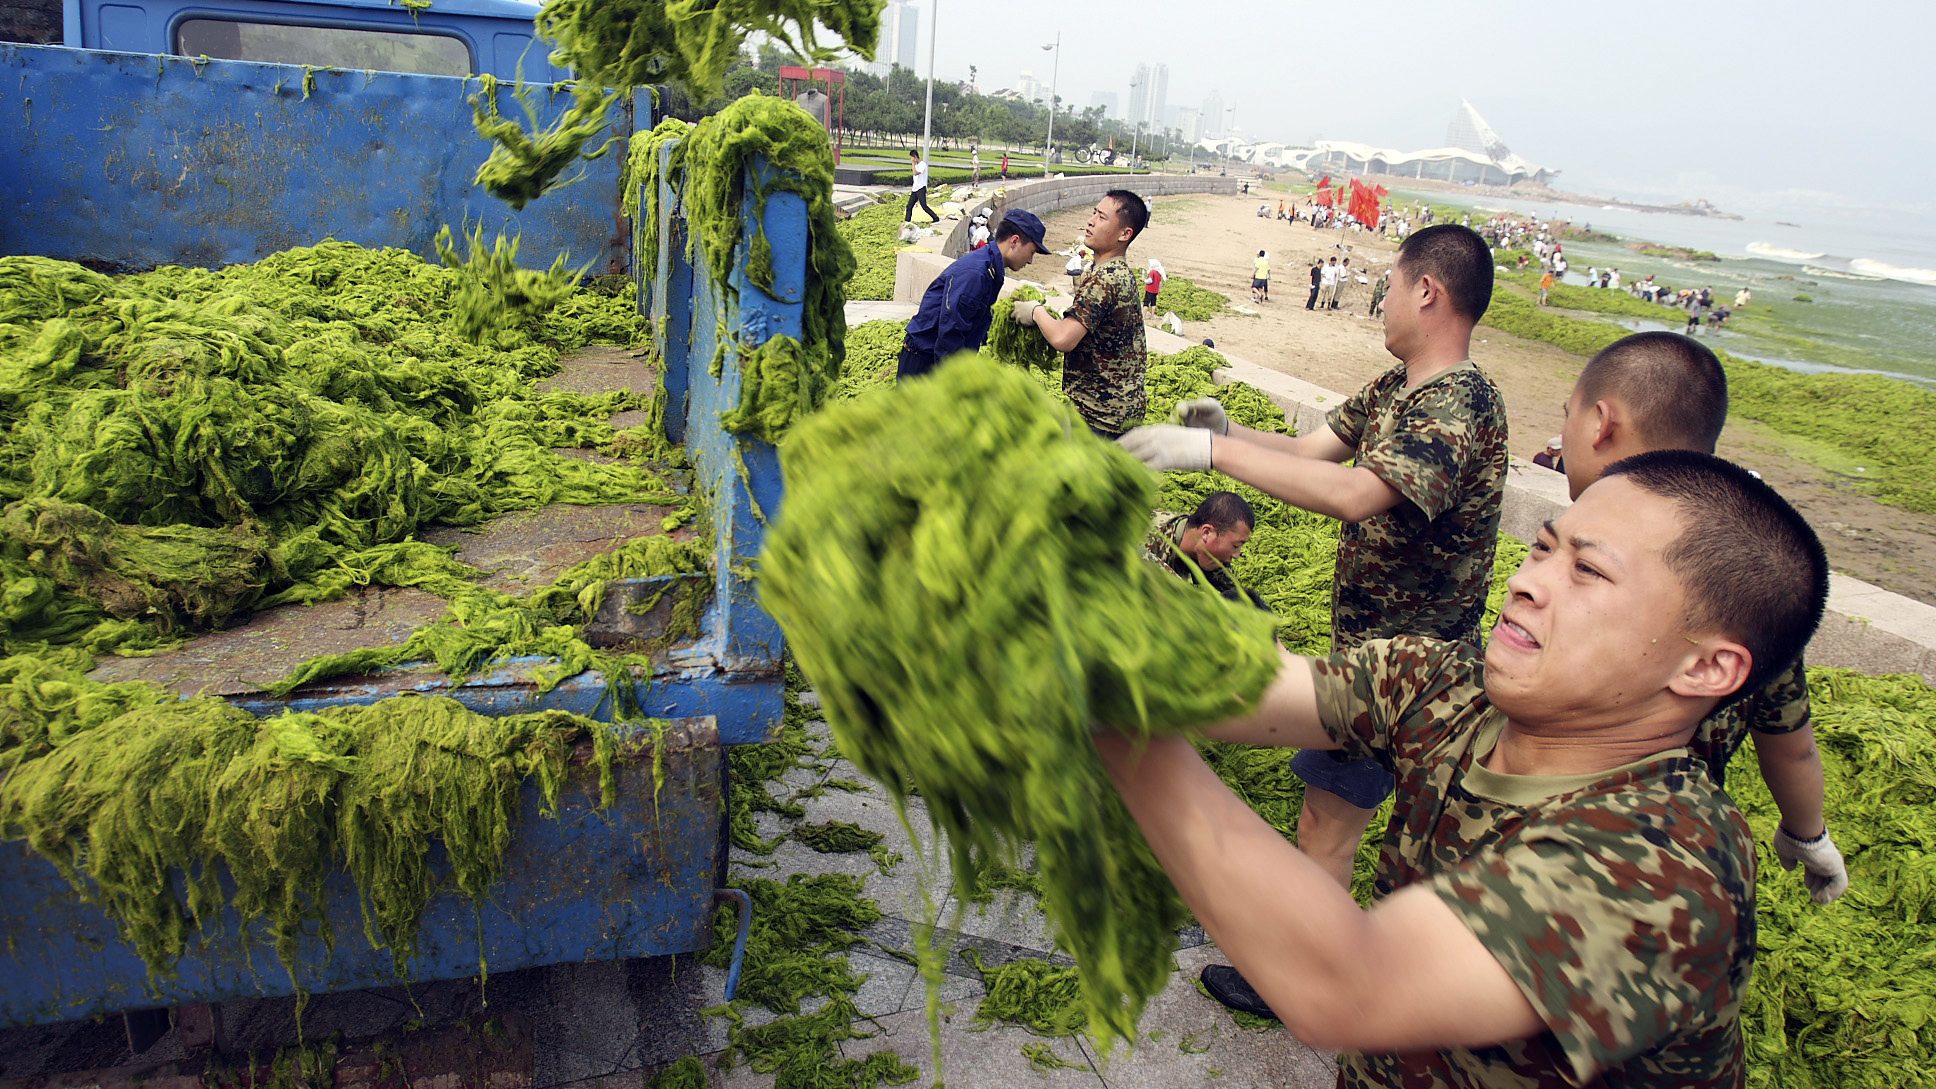 Spewing sewage into the ocean is bad: toxic algae and man